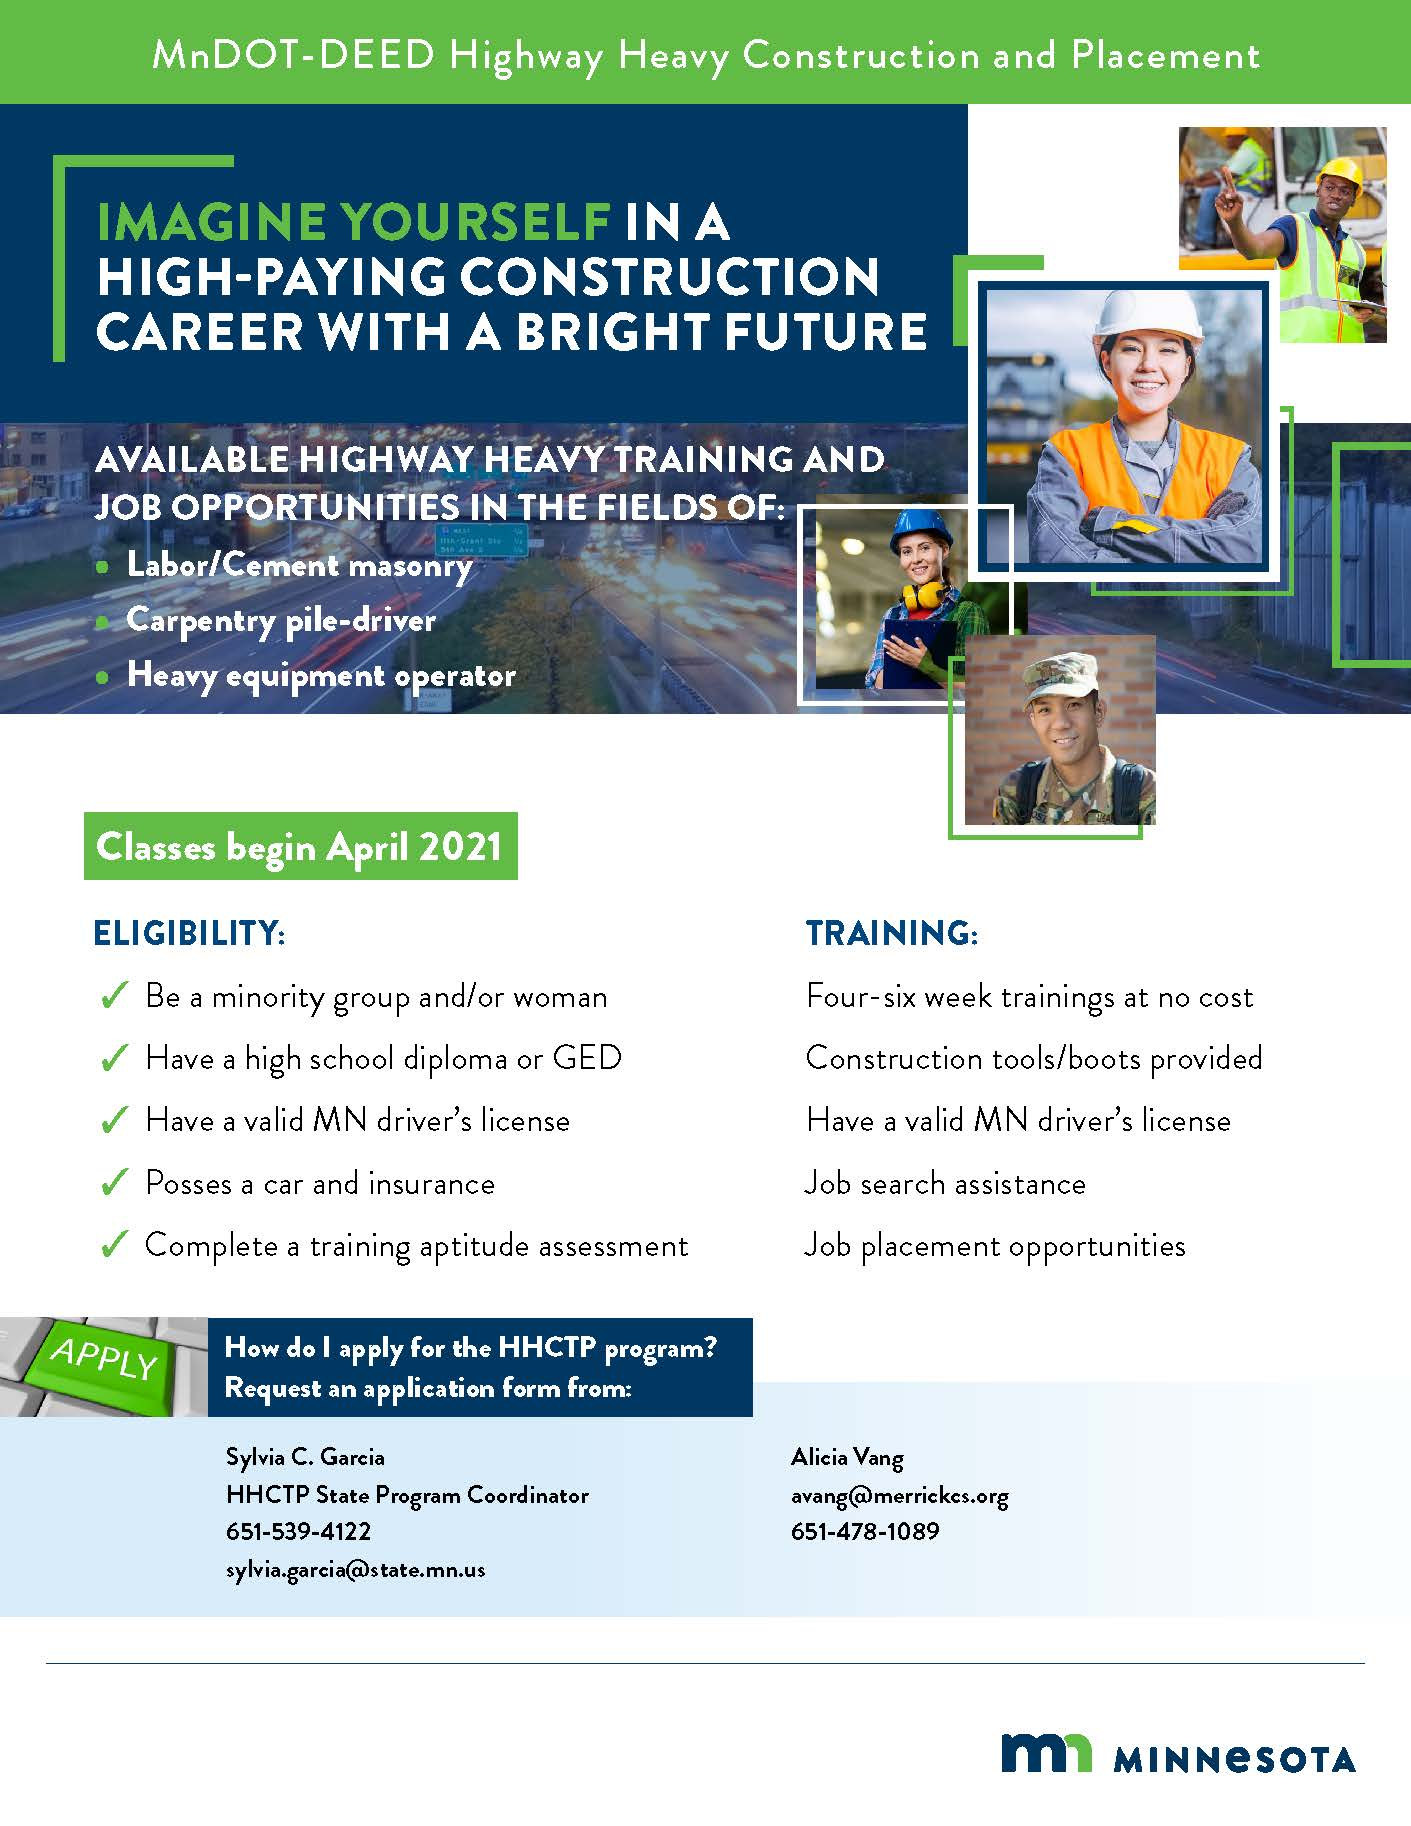 MnDOT-DEED Highway Heavy Construction and Placement